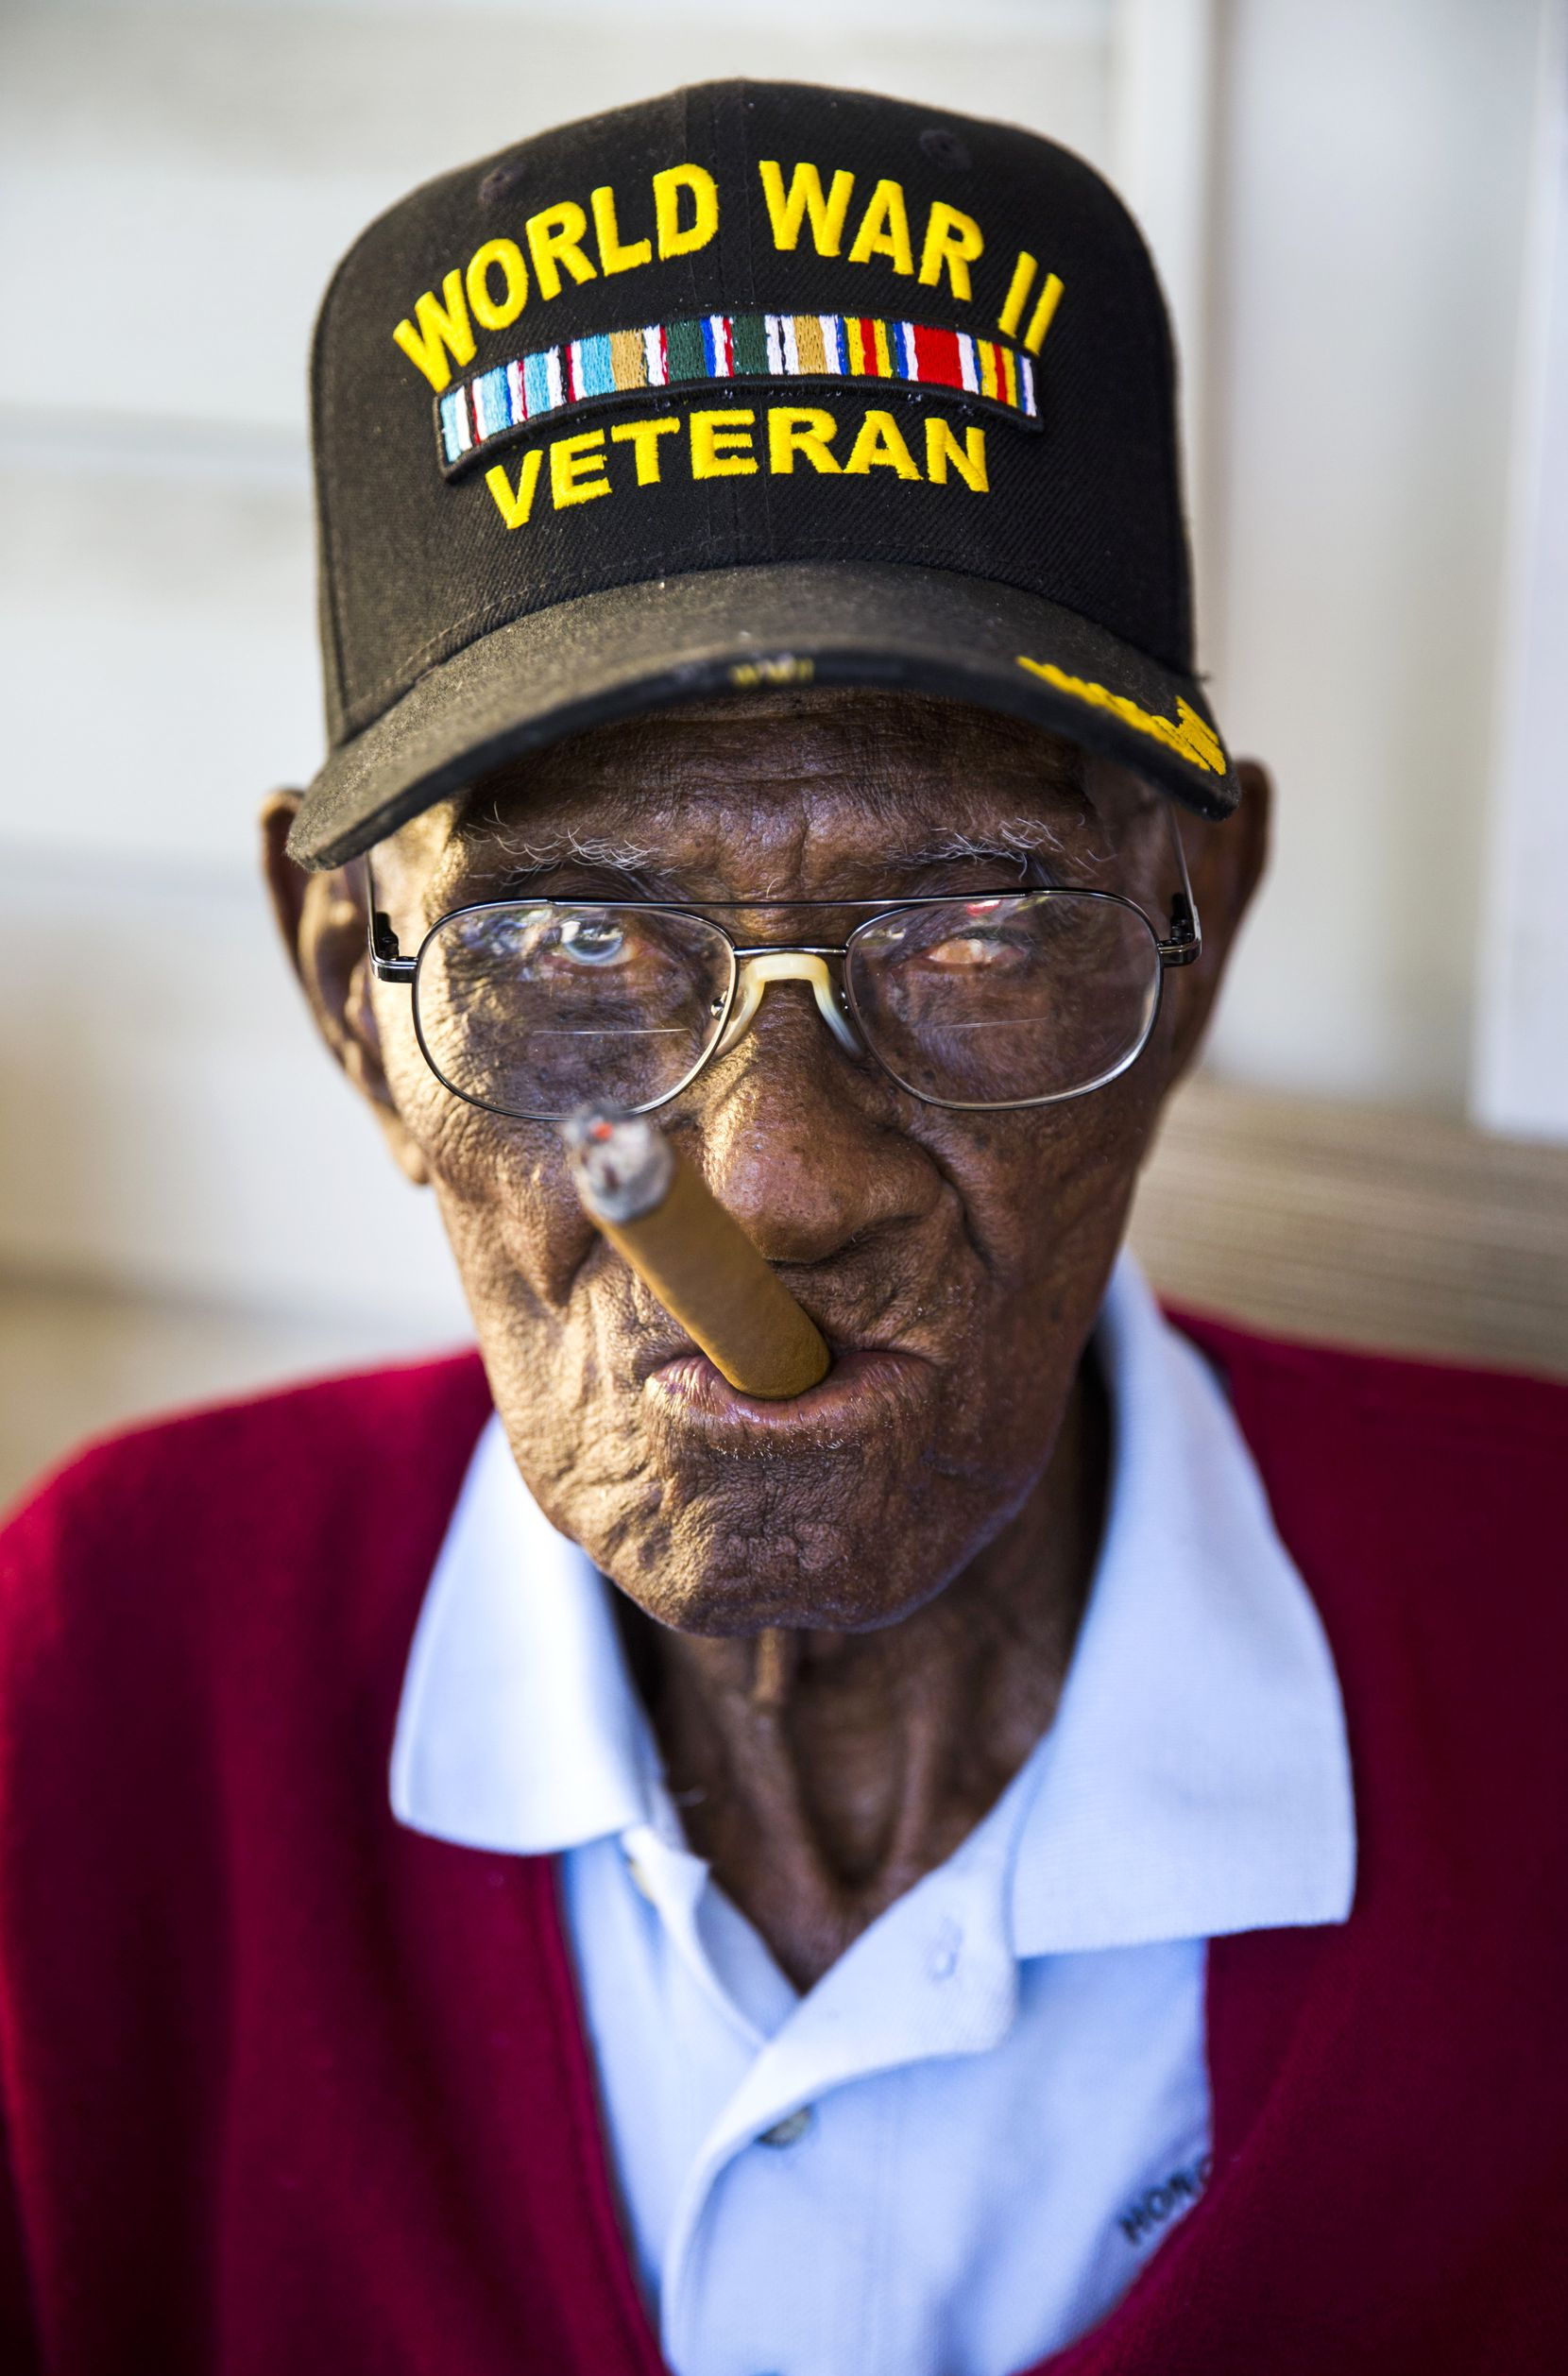 Richard Overton, 111, the oldest living U.S. war veteran, smokes a cigar on his front porch in Austin. Overton is known for puffing on a cigar and drinking whiskey while spending hours on his porch on nice days.Ashley Landis